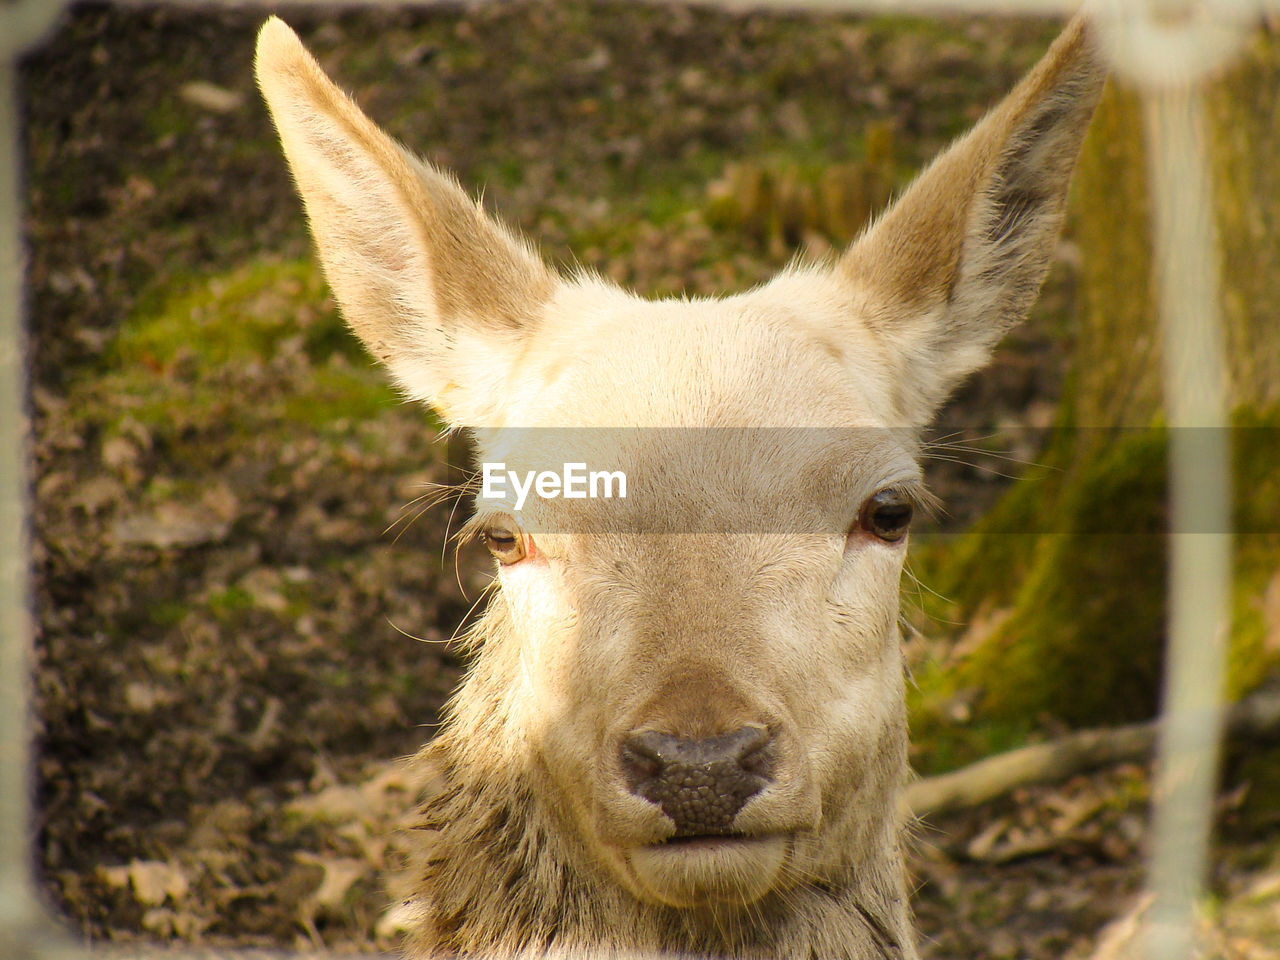 one animal, animal themes, domestic animals, close-up, day, mammal, no people, portrait, focus on foreground, outdoors, looking at camera, nature